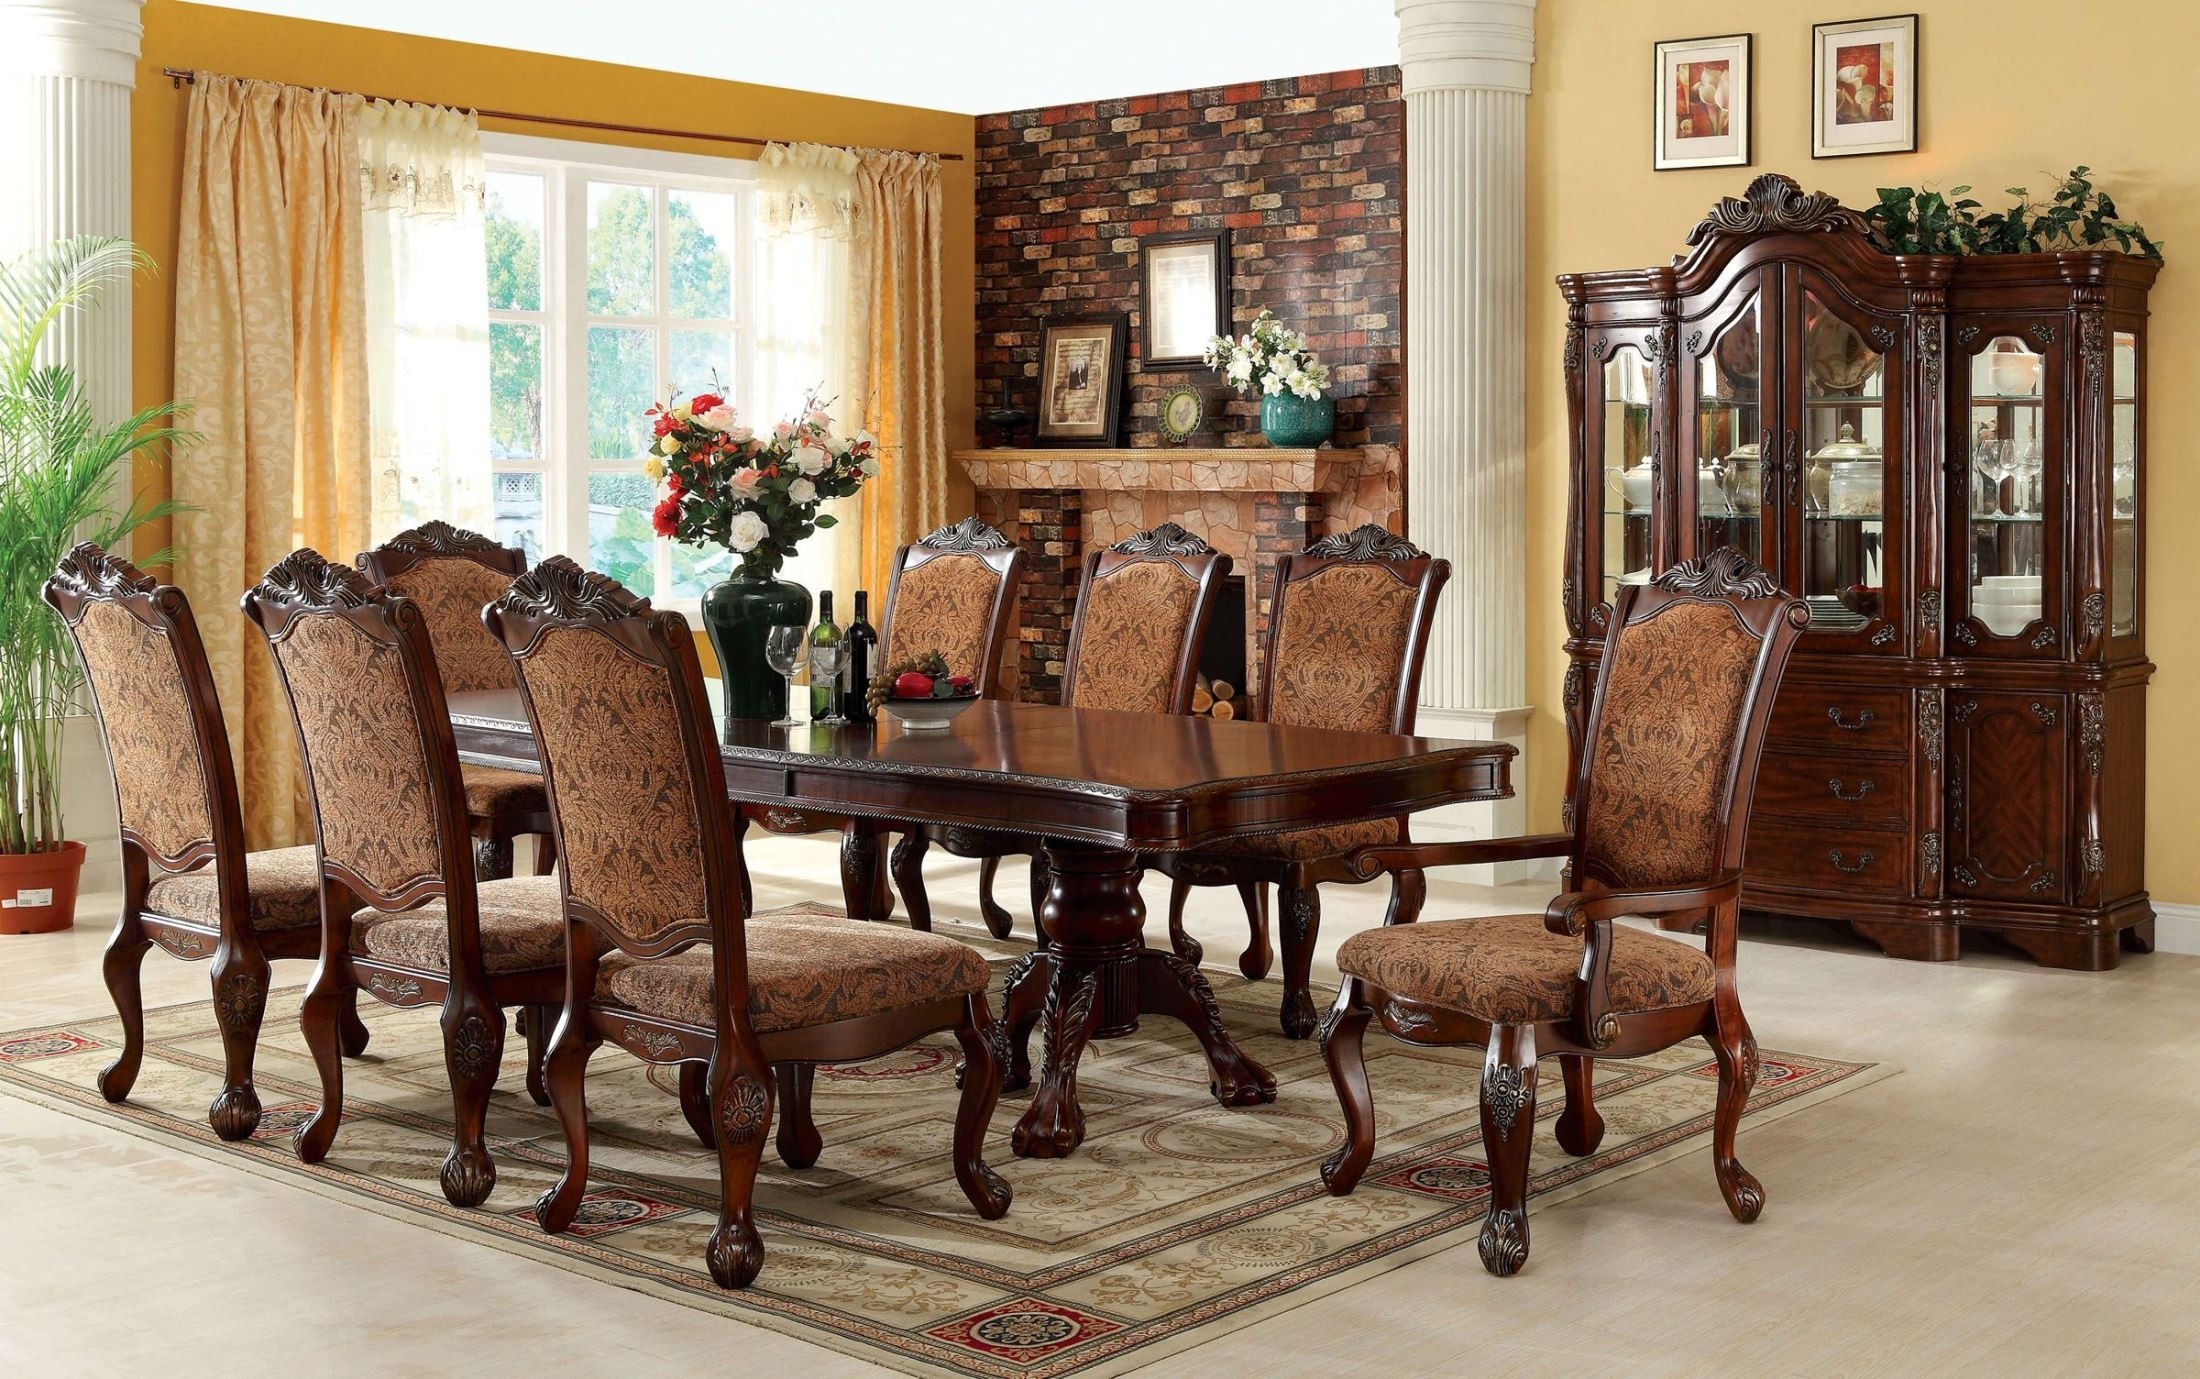 Cromwell antique cherry formal dining room set cm3103t for Fancy dining room sets